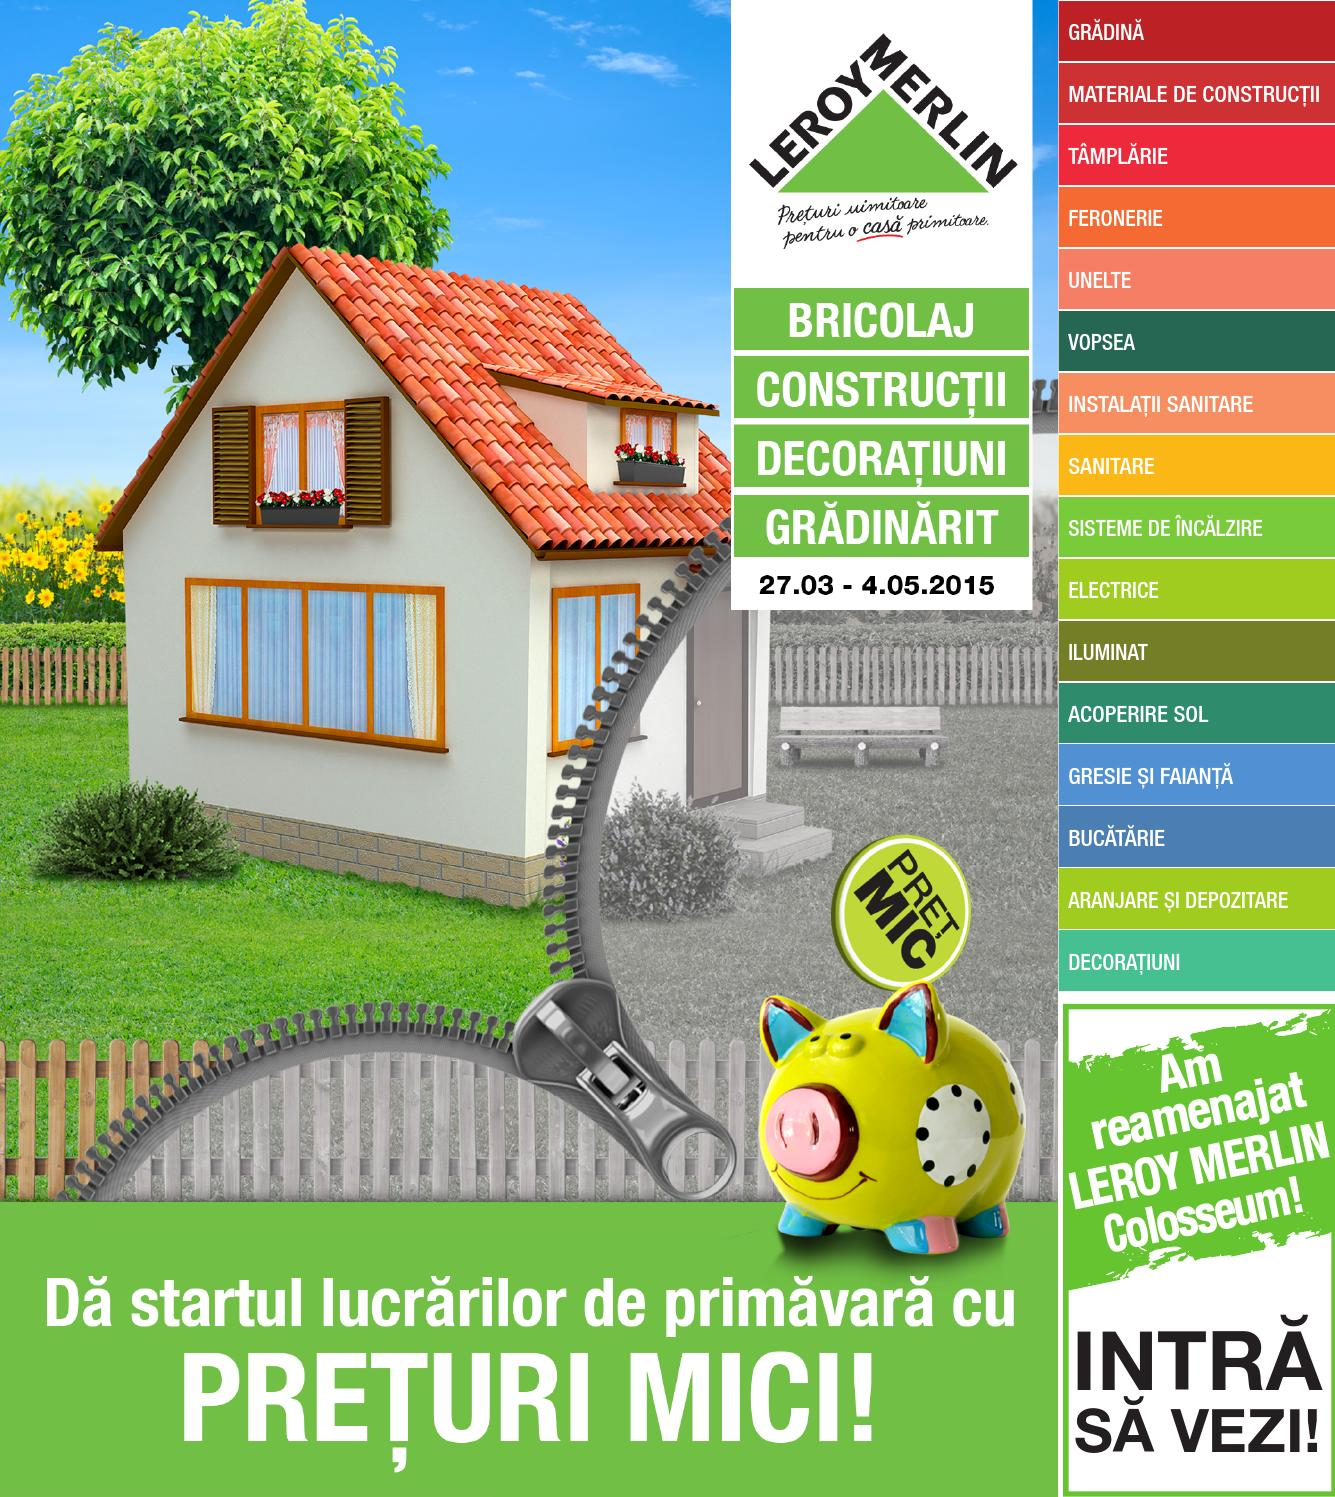 Distingu catalogue leroy merlin 2015 renaa conception for Catalogue jardin 2015 leroy merlin